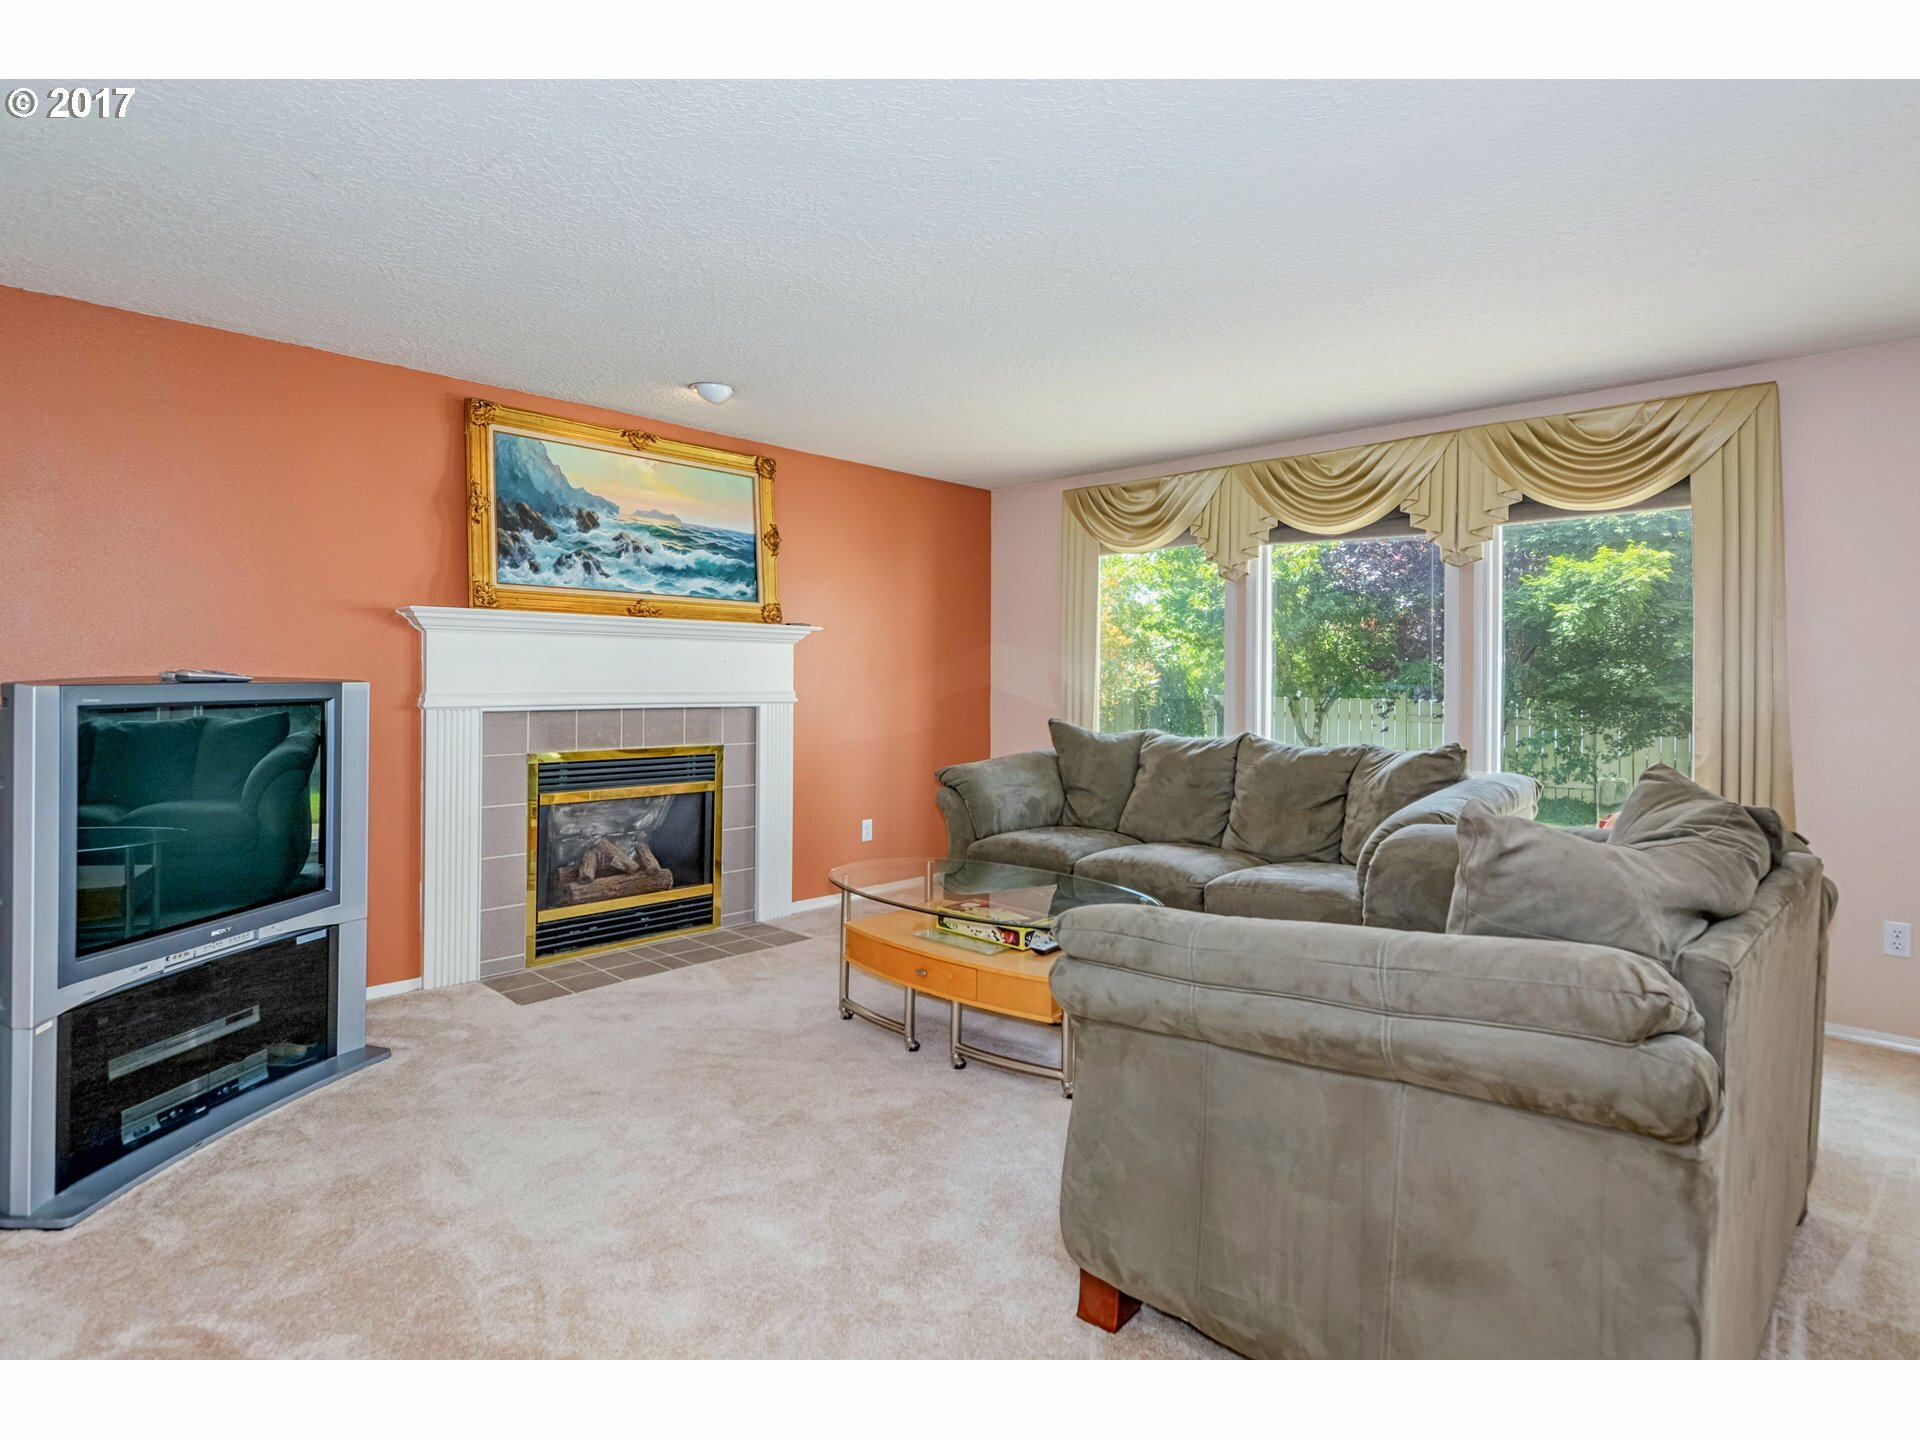 17211 Se 30th St, Vancouver, WA - USA (photo 4)